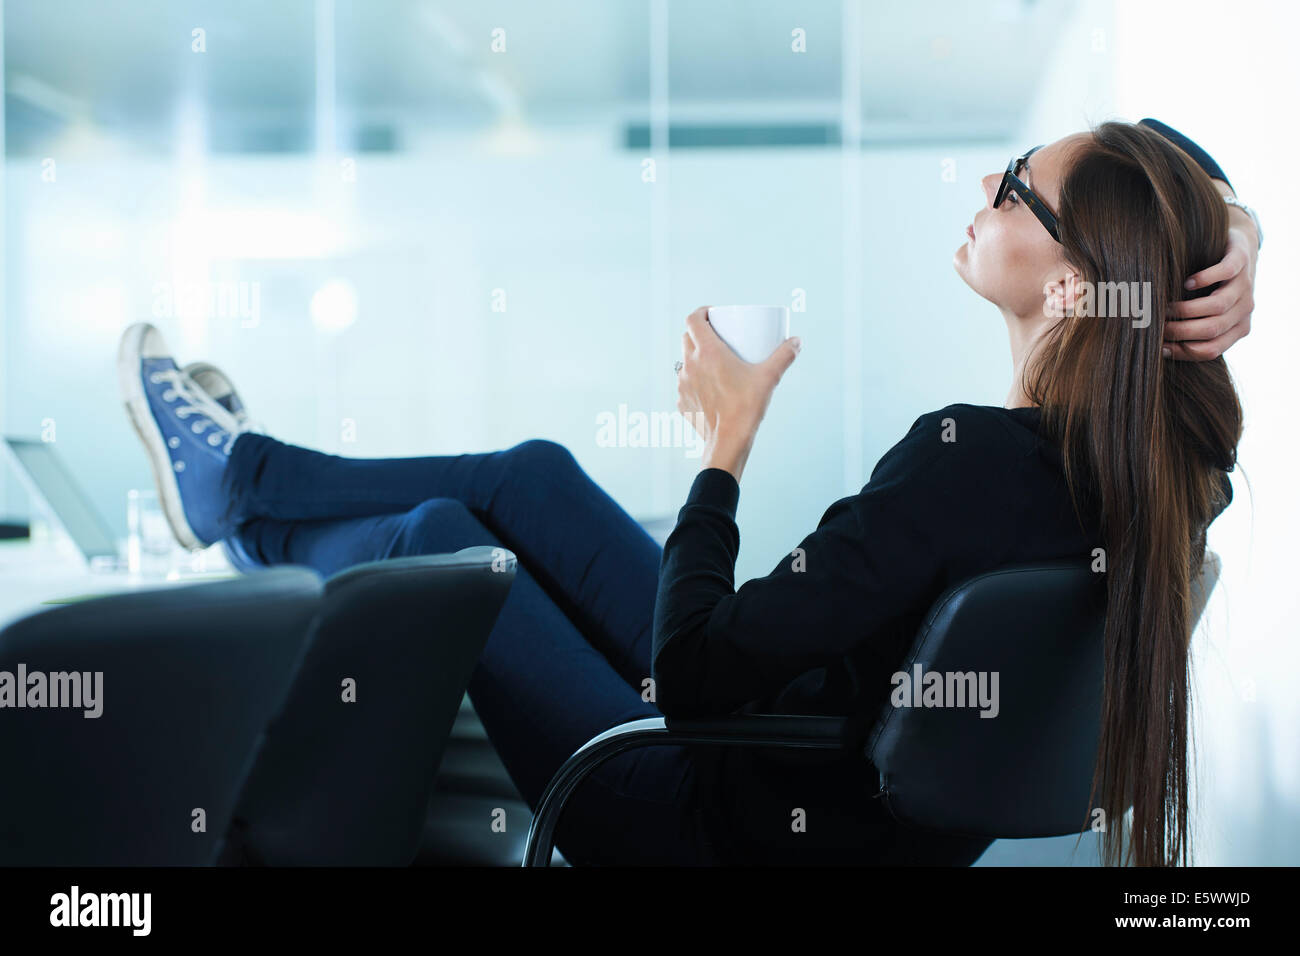 Female office worker leaning back with feet up on conference table Stock Photo